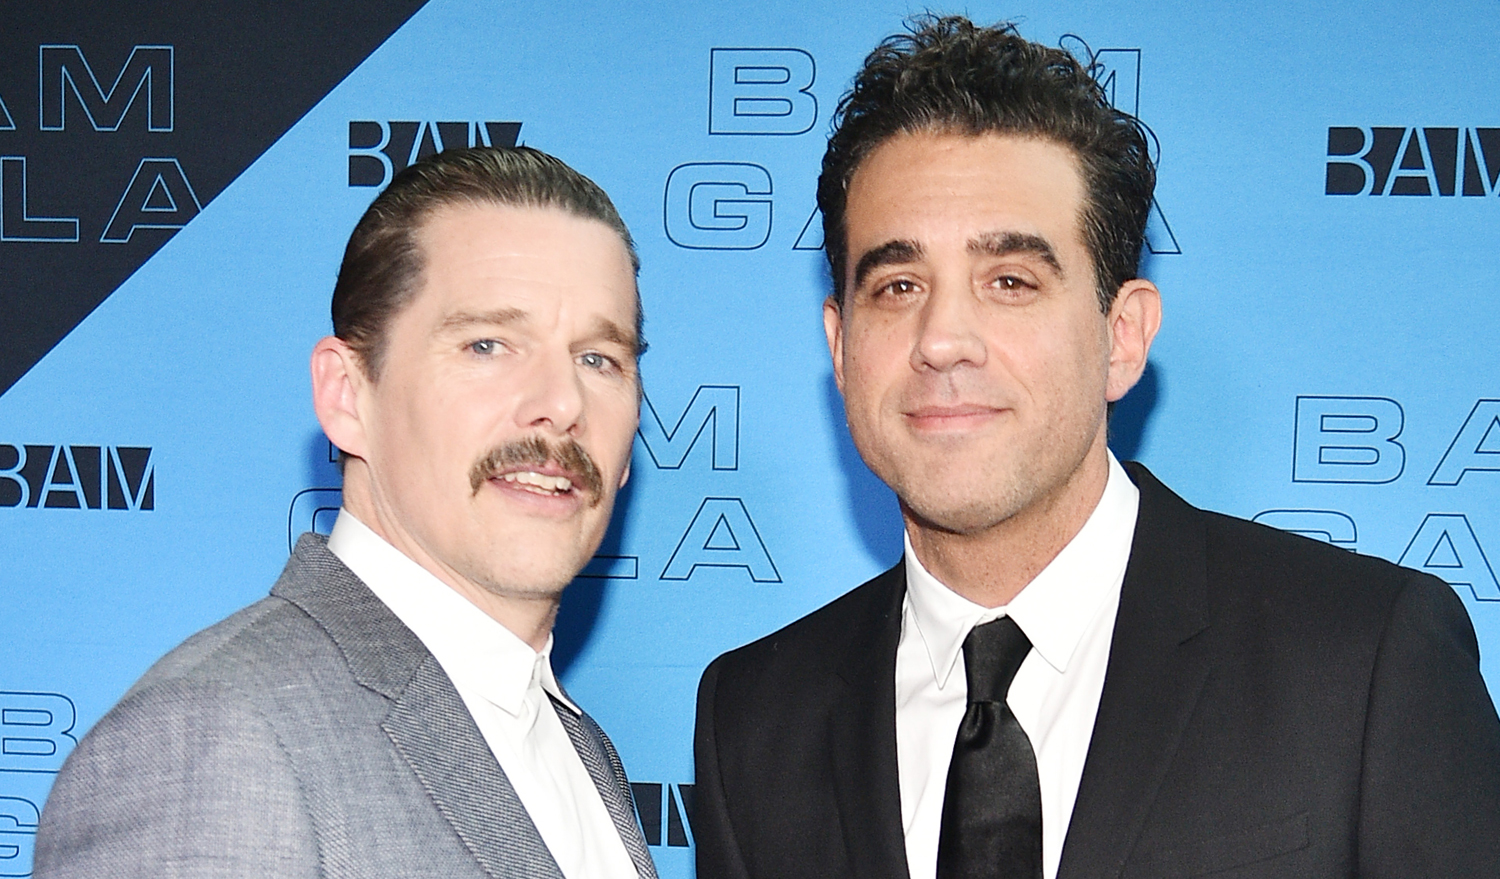 Ethan Hawke & Bobby Cannavale Suit Up for Bam Gala 2019 ...